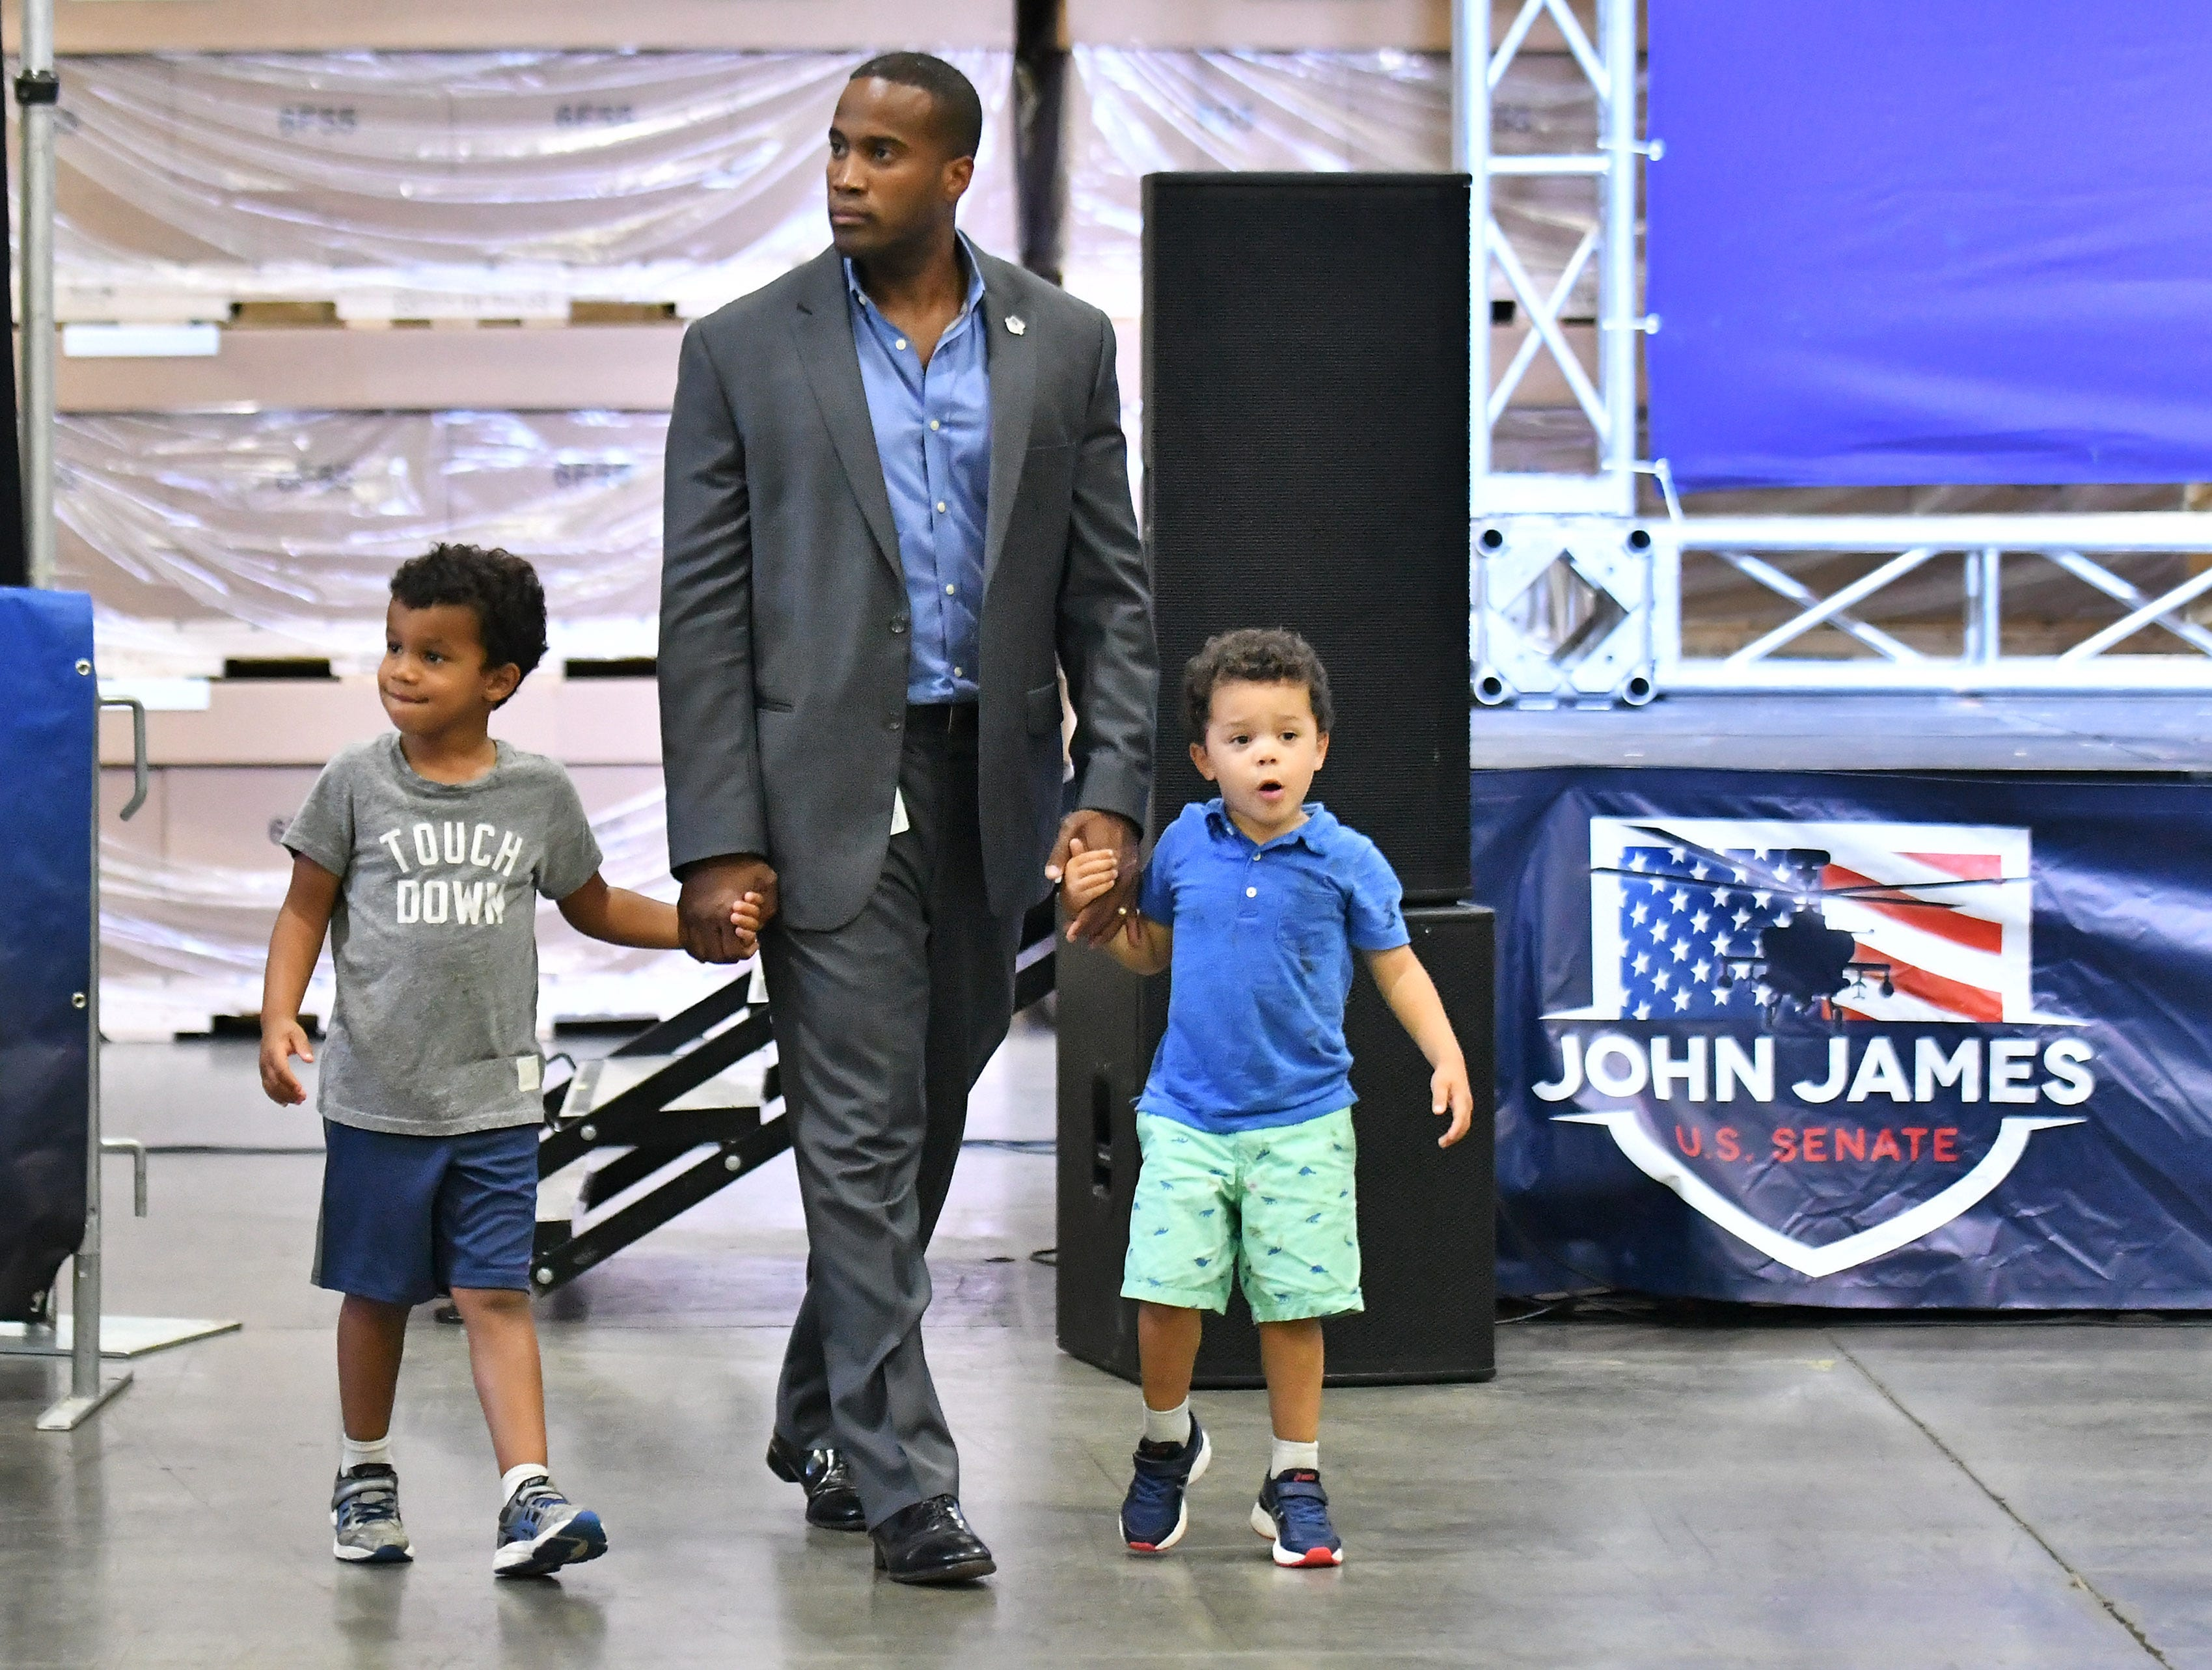 Republican candidate for U.S. Senate John James walk through the venue for his election night party with his sons, John and Hudson at James Group International in Detroit on Aug. 7, 2018.